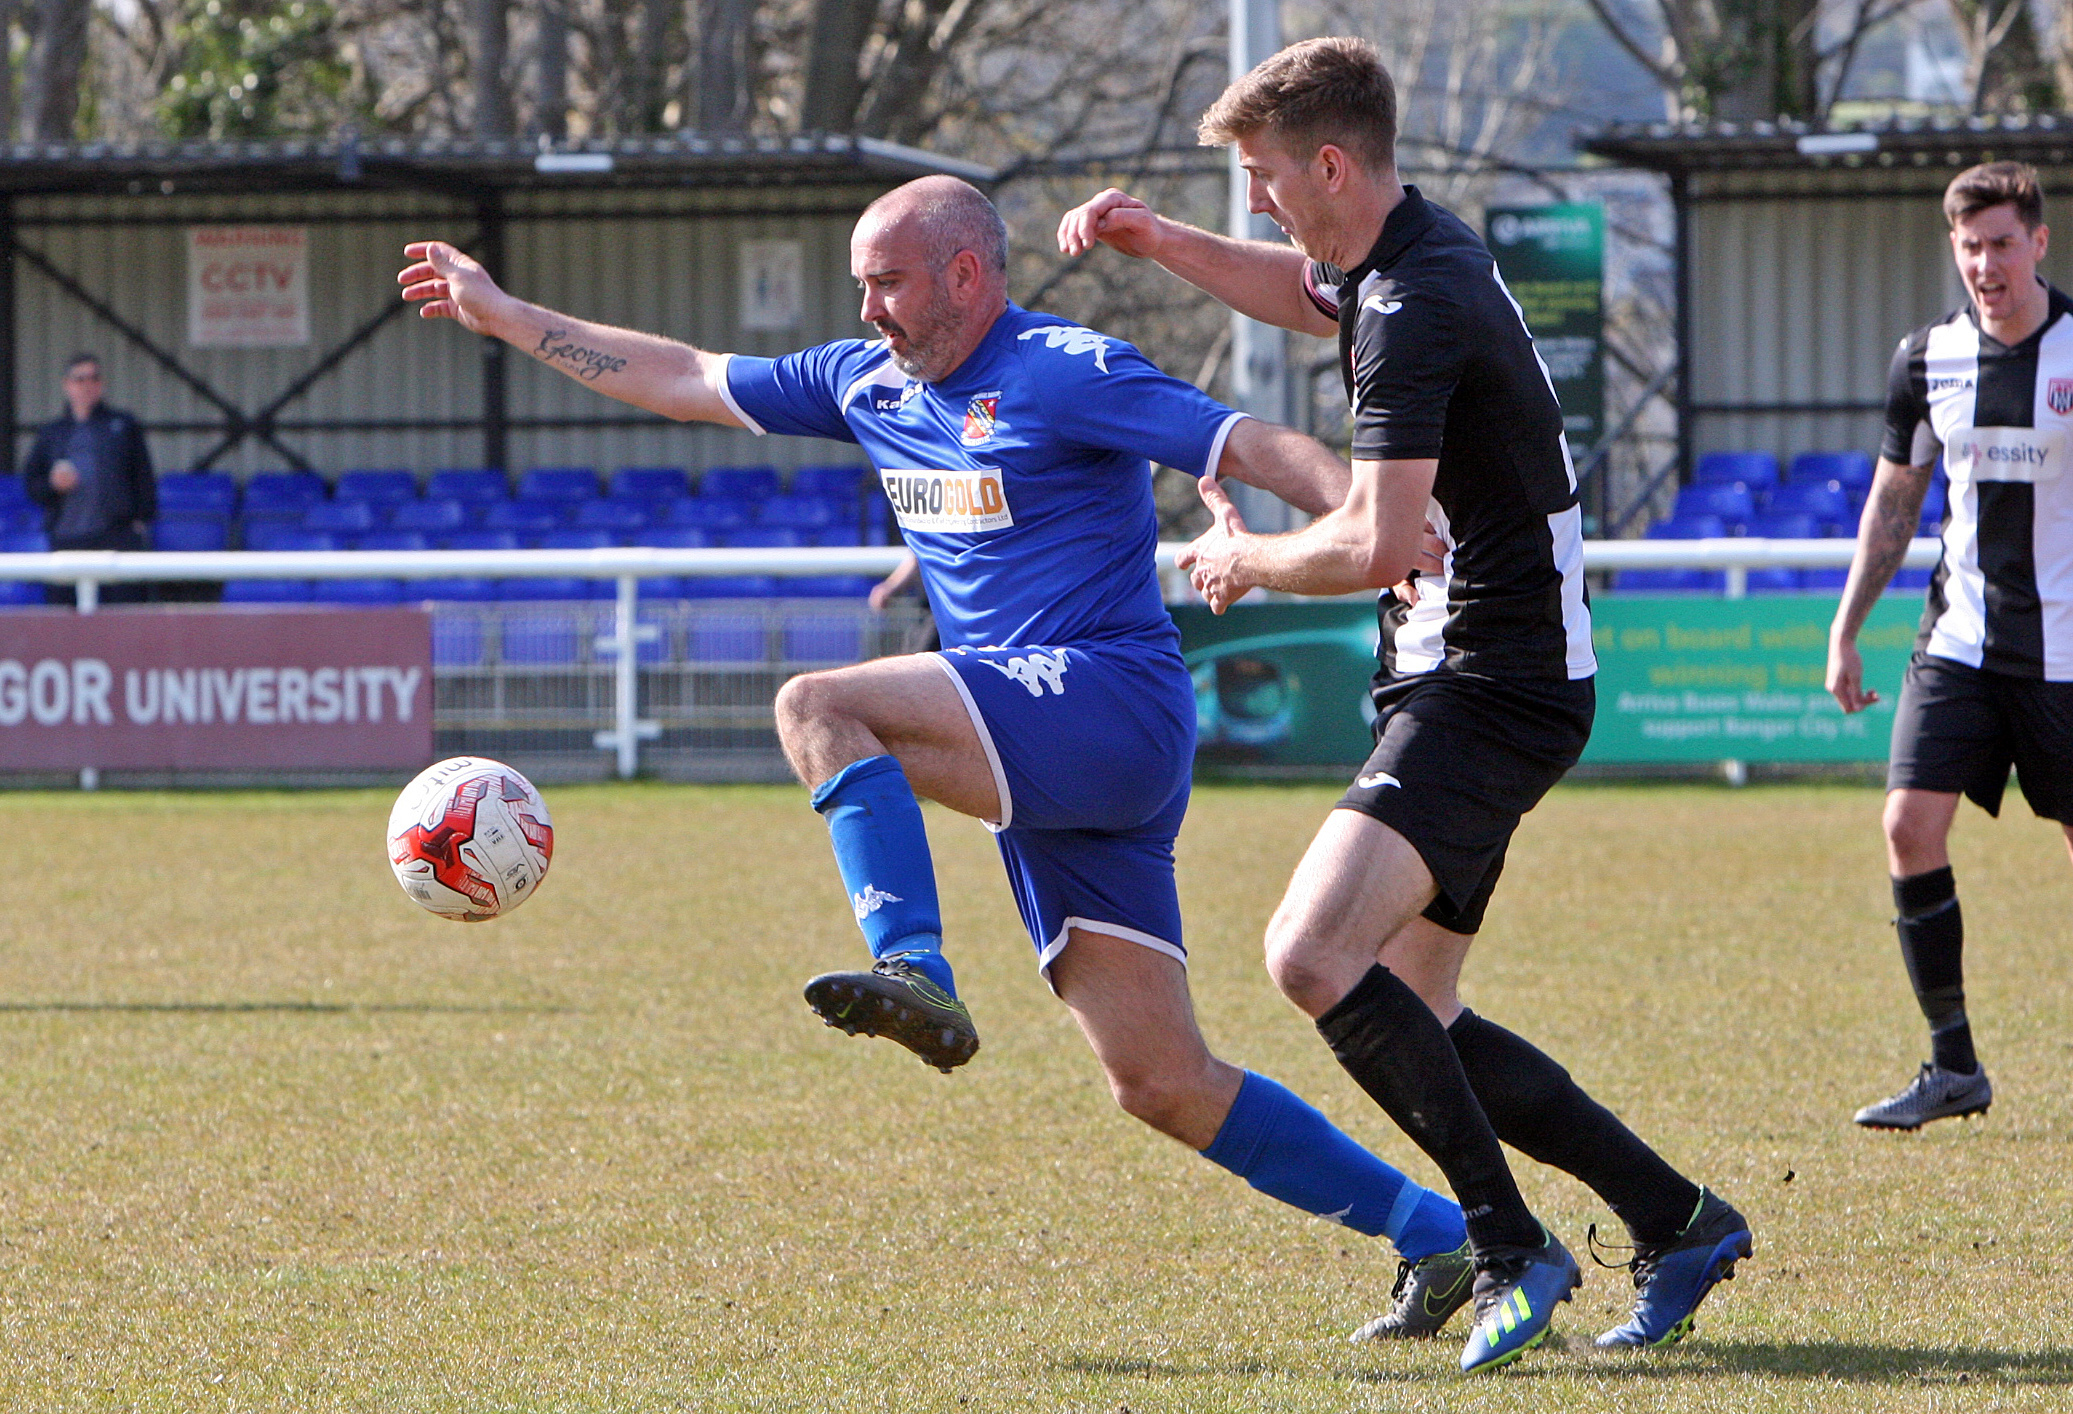 Gary Taylor-Fletcher has agreed to become Llandudno's new manager (Photo by Richard Birch)